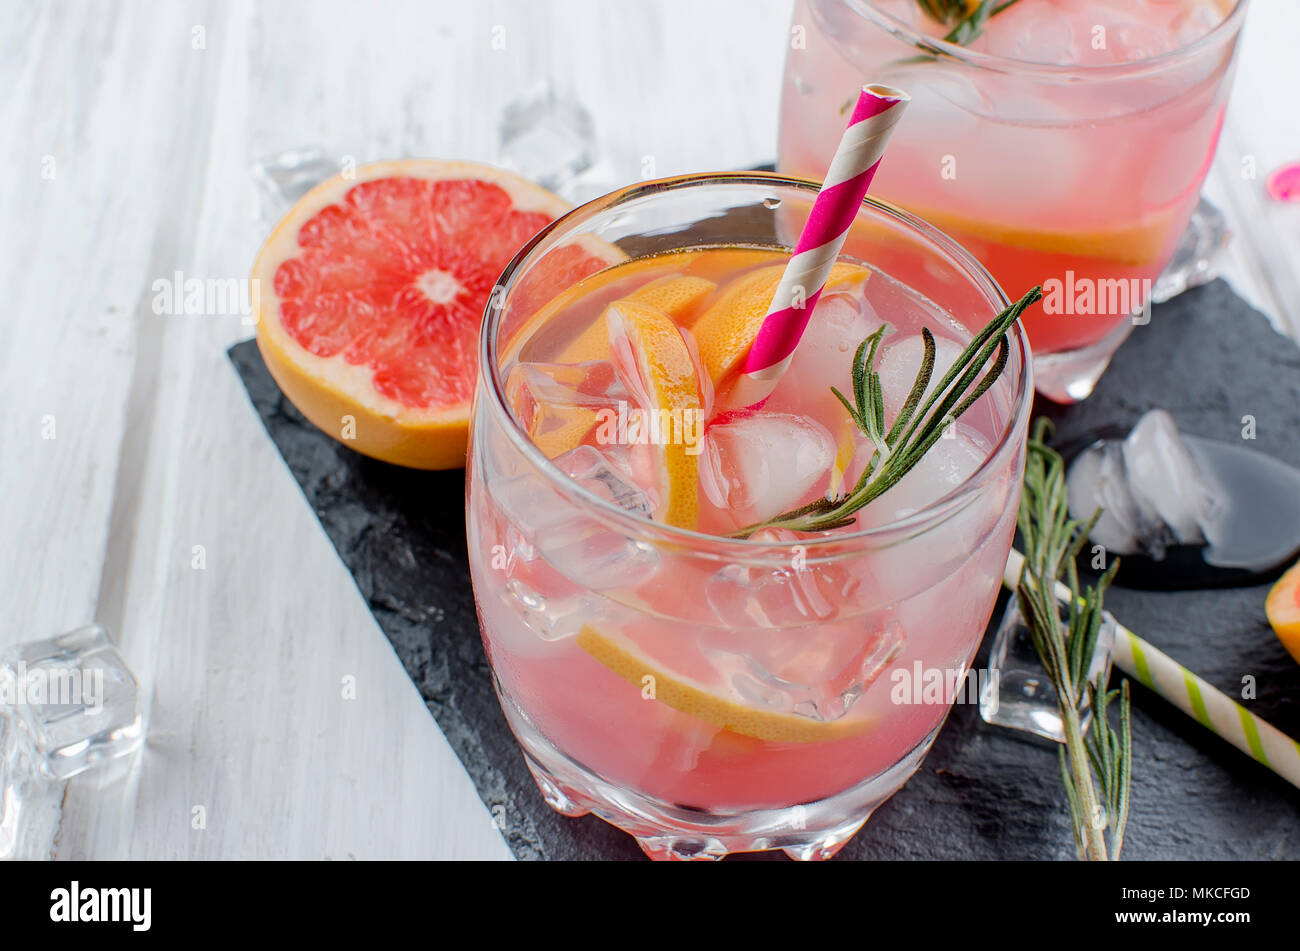 Cocktail with grapefruit slices and ice, ingredients for a drink on white wooden table, copy space Stock Photo